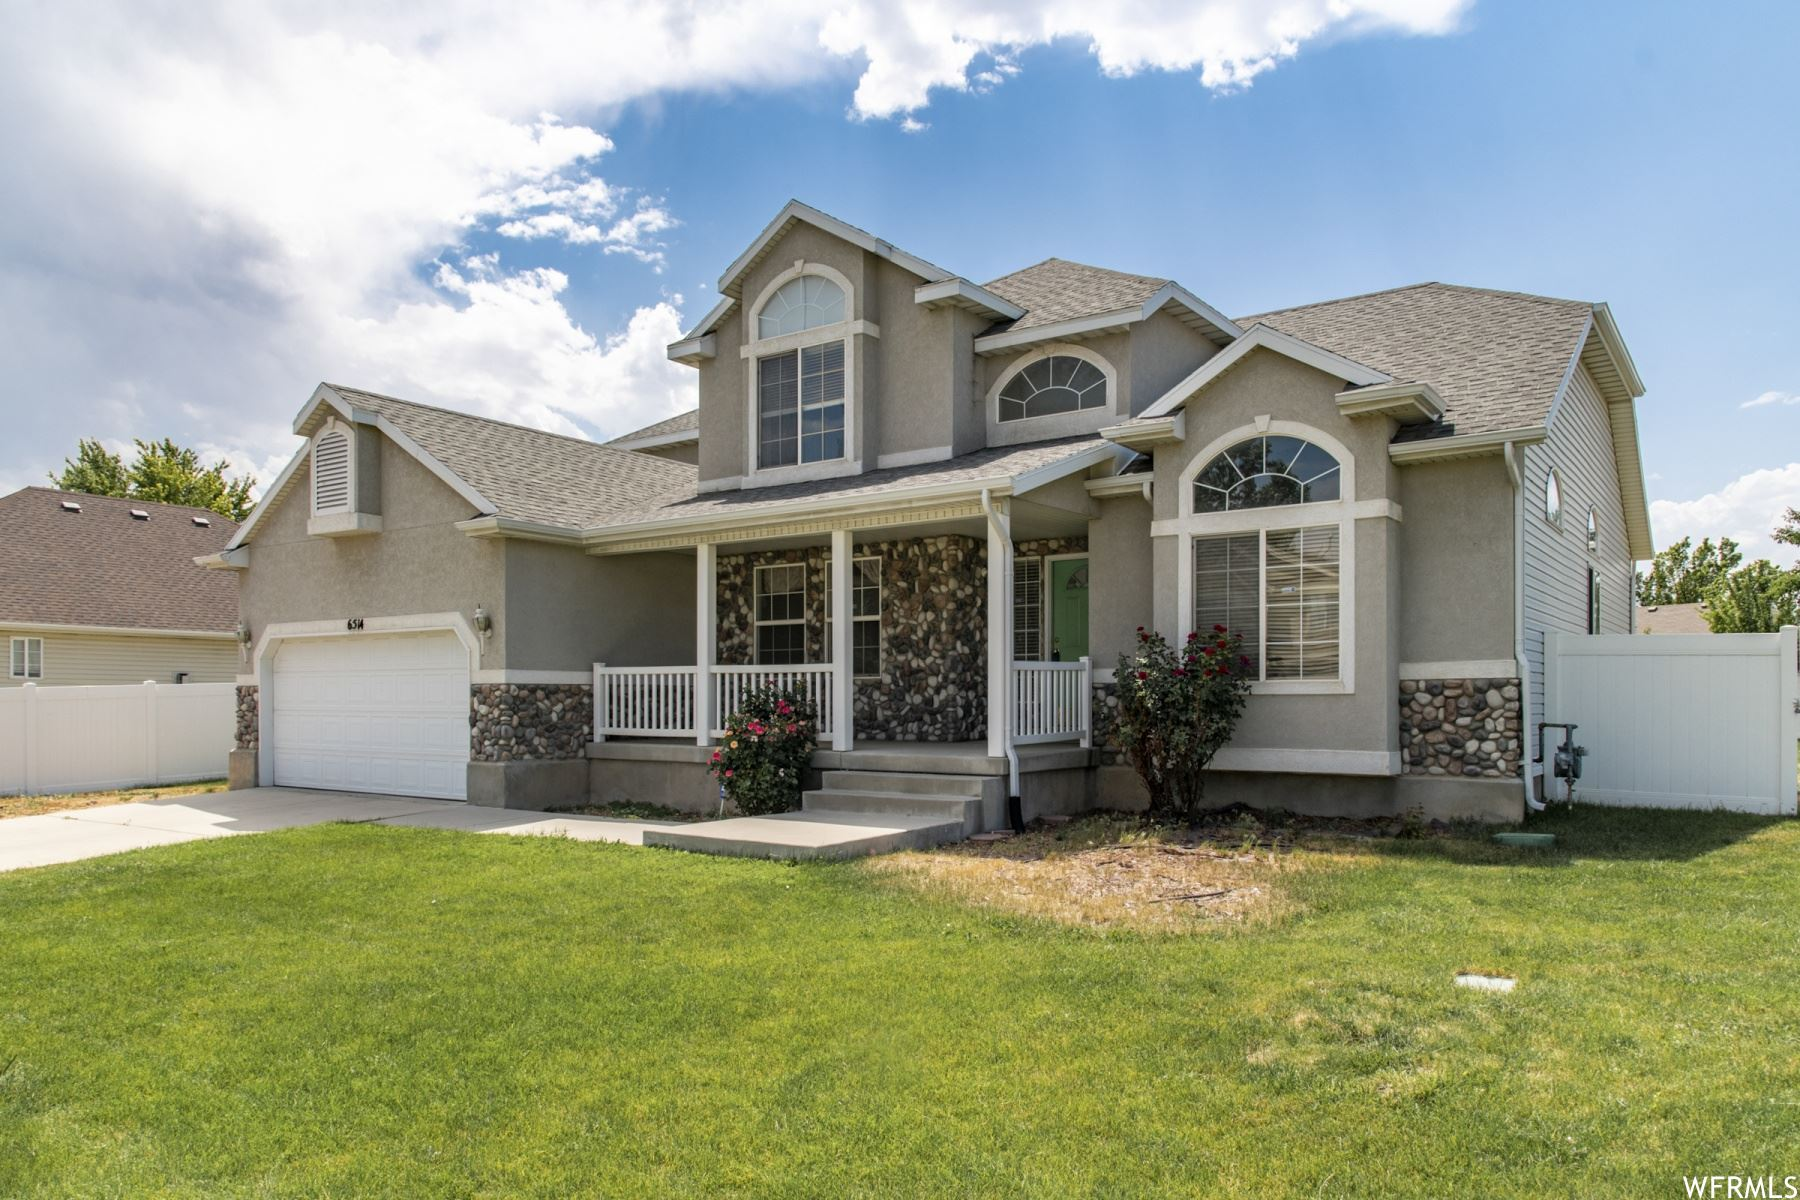 Photo of 6514 S SILVER MEDAL DR, Taylorsville, UT 84129 (MLS # 1755483)